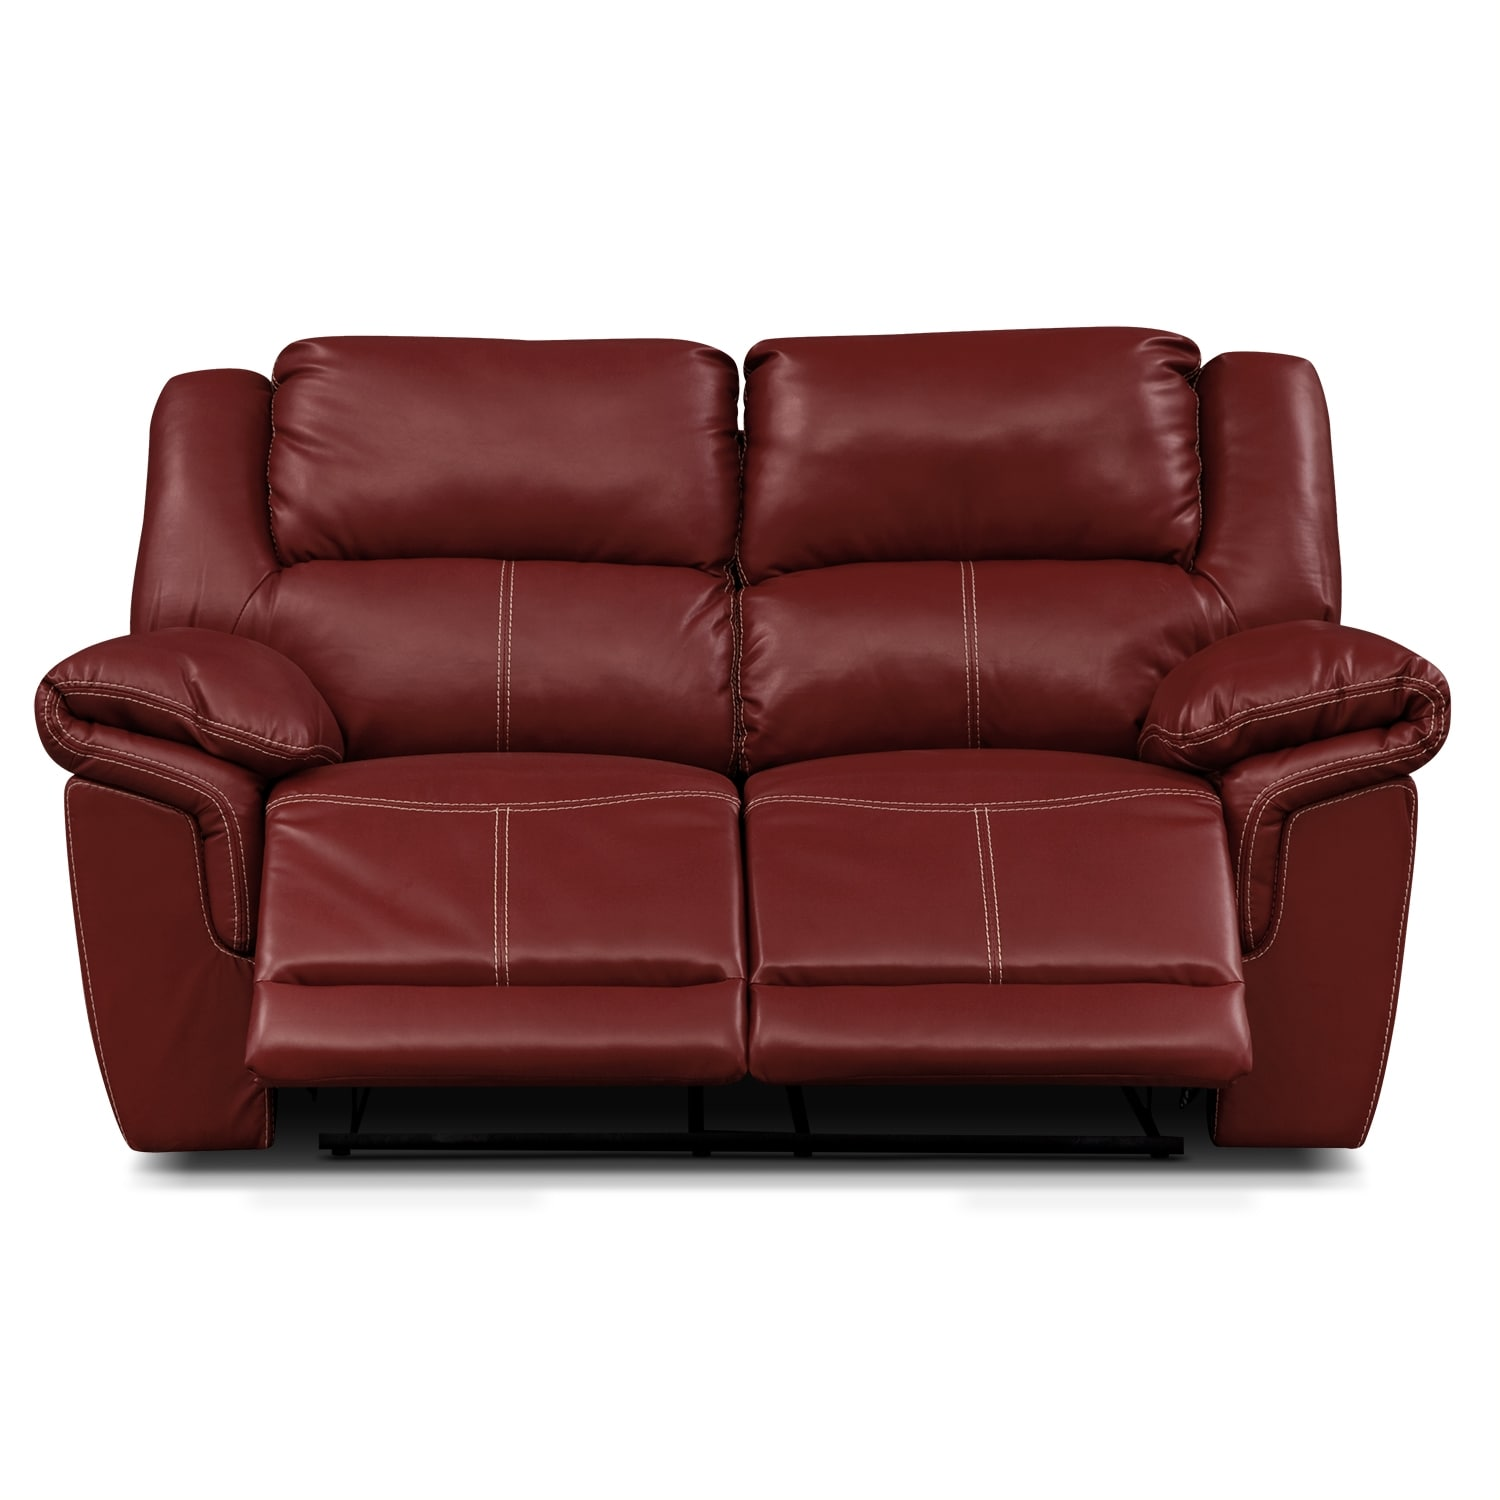 Jaguar Ii Leather Dual Reclining Loveseat Value City